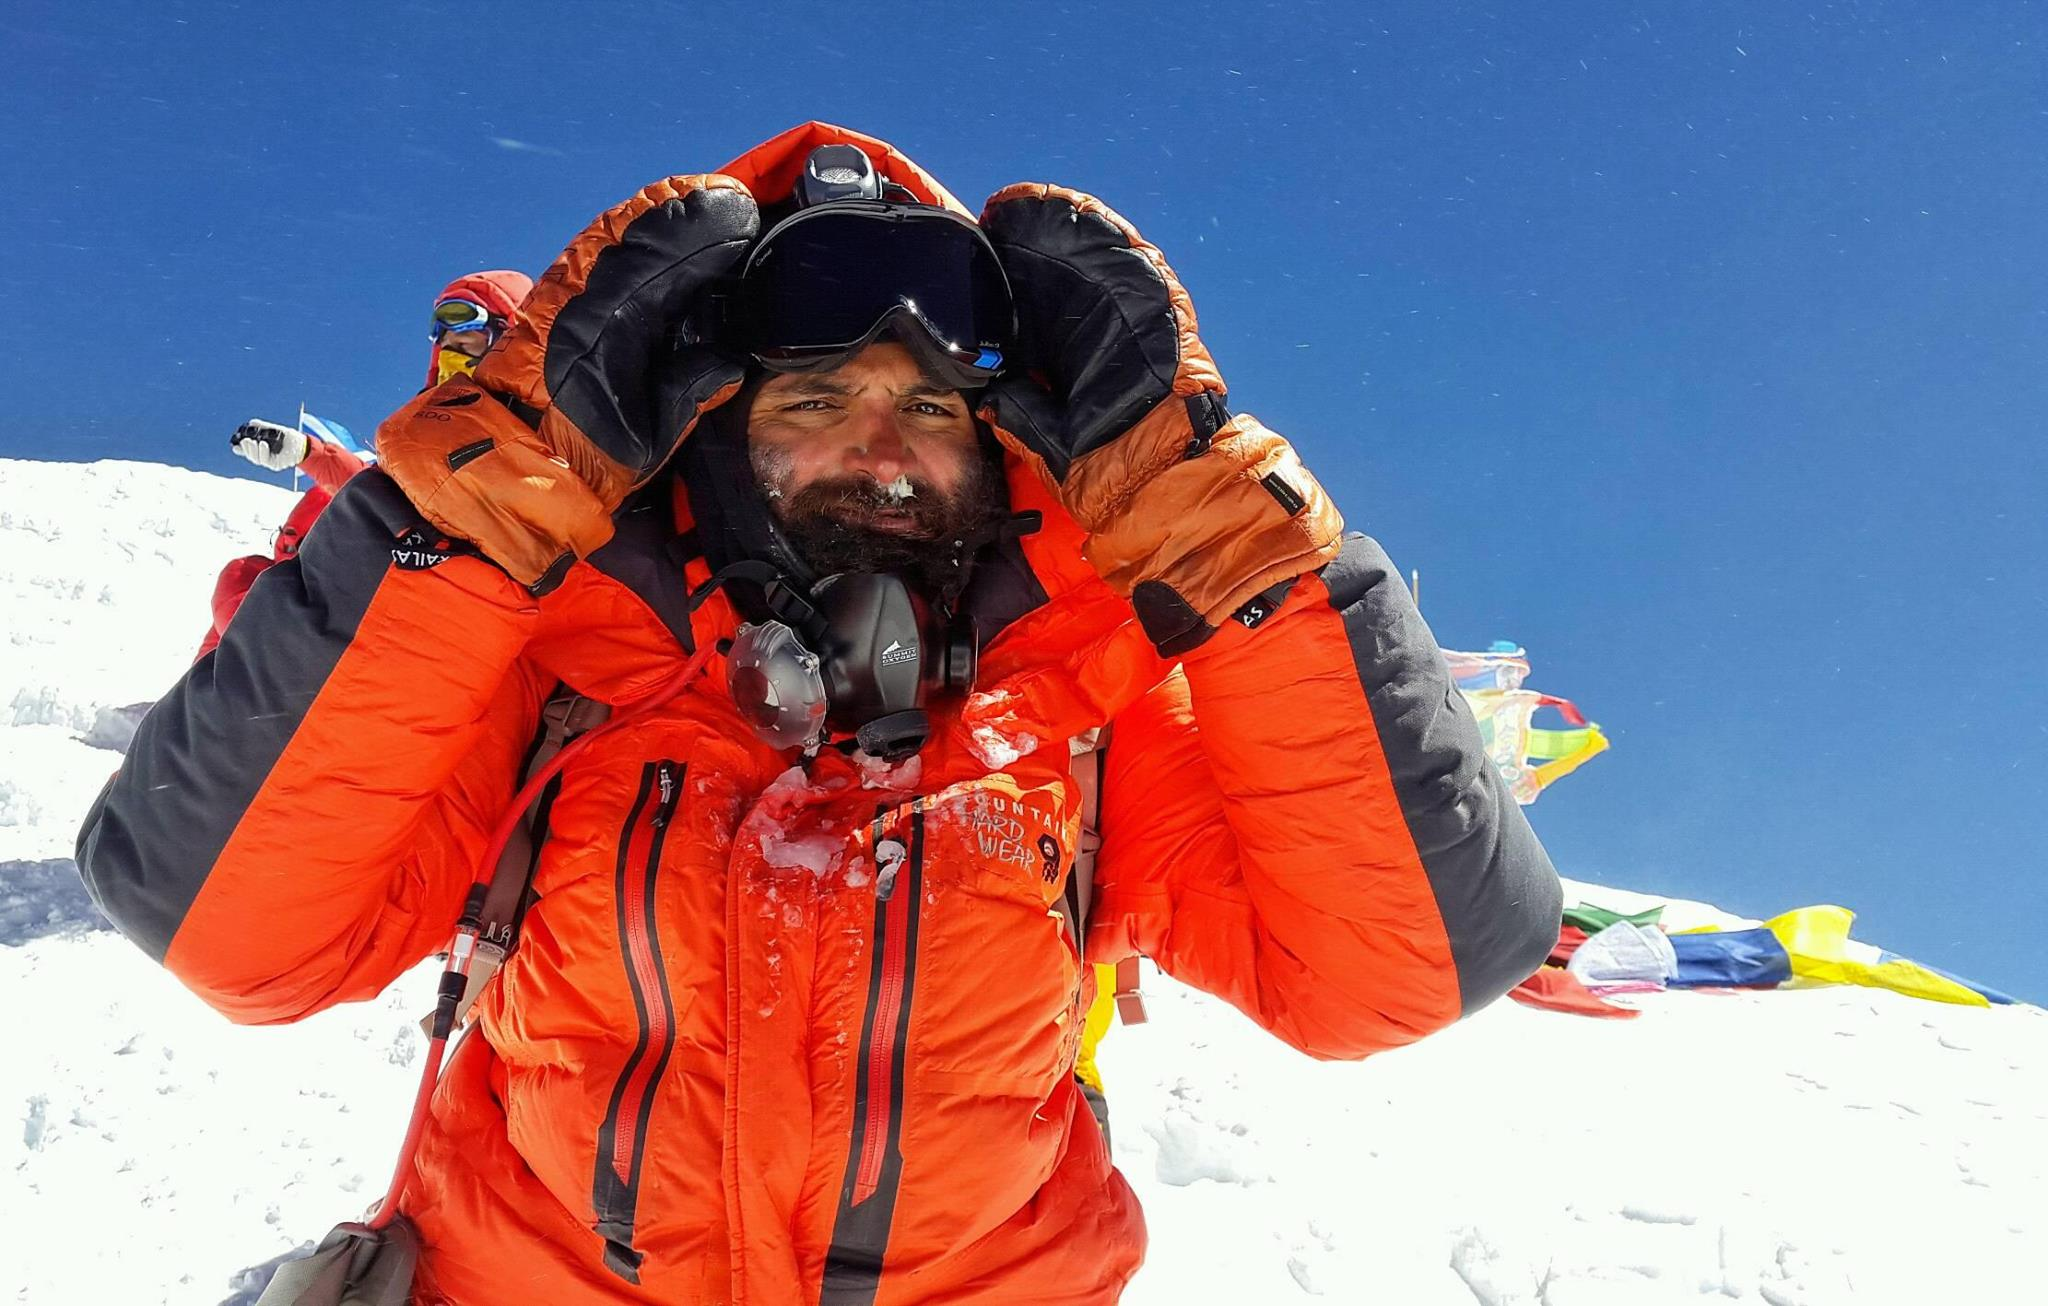 """Kuntal Joisher, a vegan of 14 years,climbed and summited Everest on May 19th, 2016, the day before another vegan,Dr. Maria Strydom, died trying. He calls the viral headlines blaming Strydom's death on her vegan diet """"clearly irresponsible journalism and worst form of online click baiting"""" and urges people to """"put this absolute BS controversy to rest."""""""